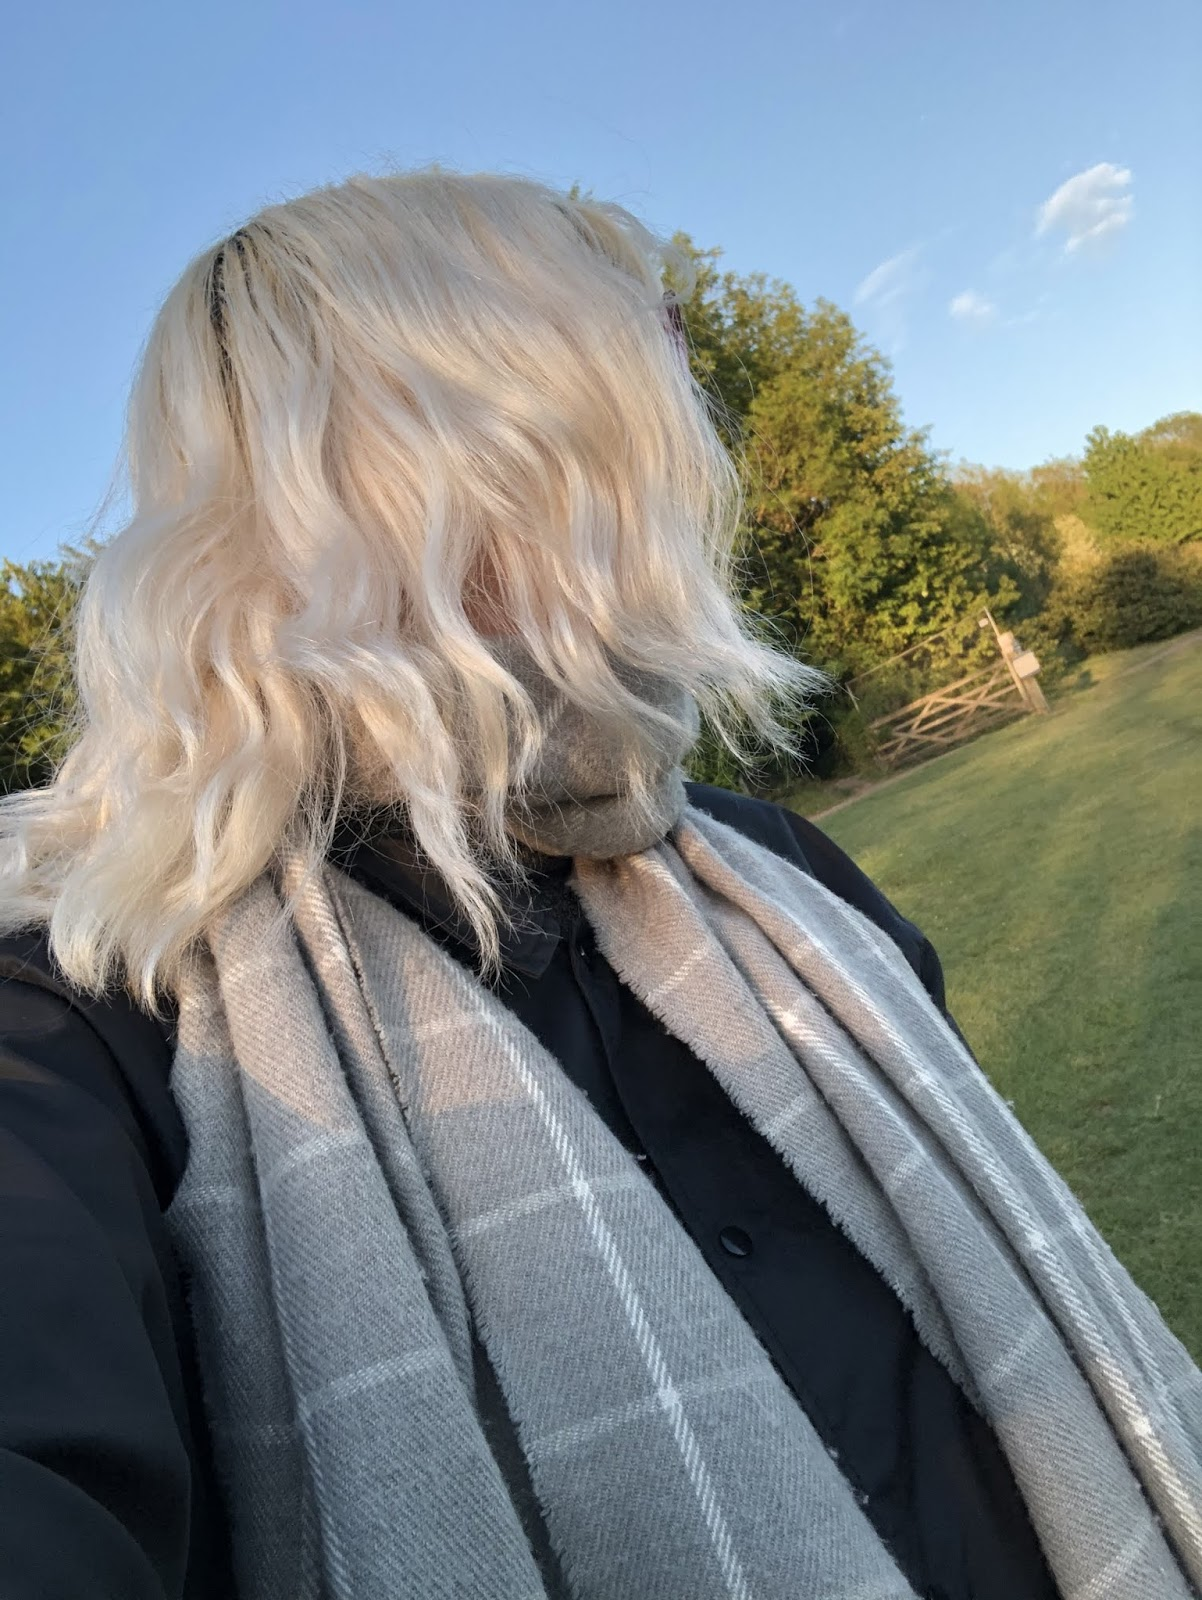 My hair had returned to white after 3 washes